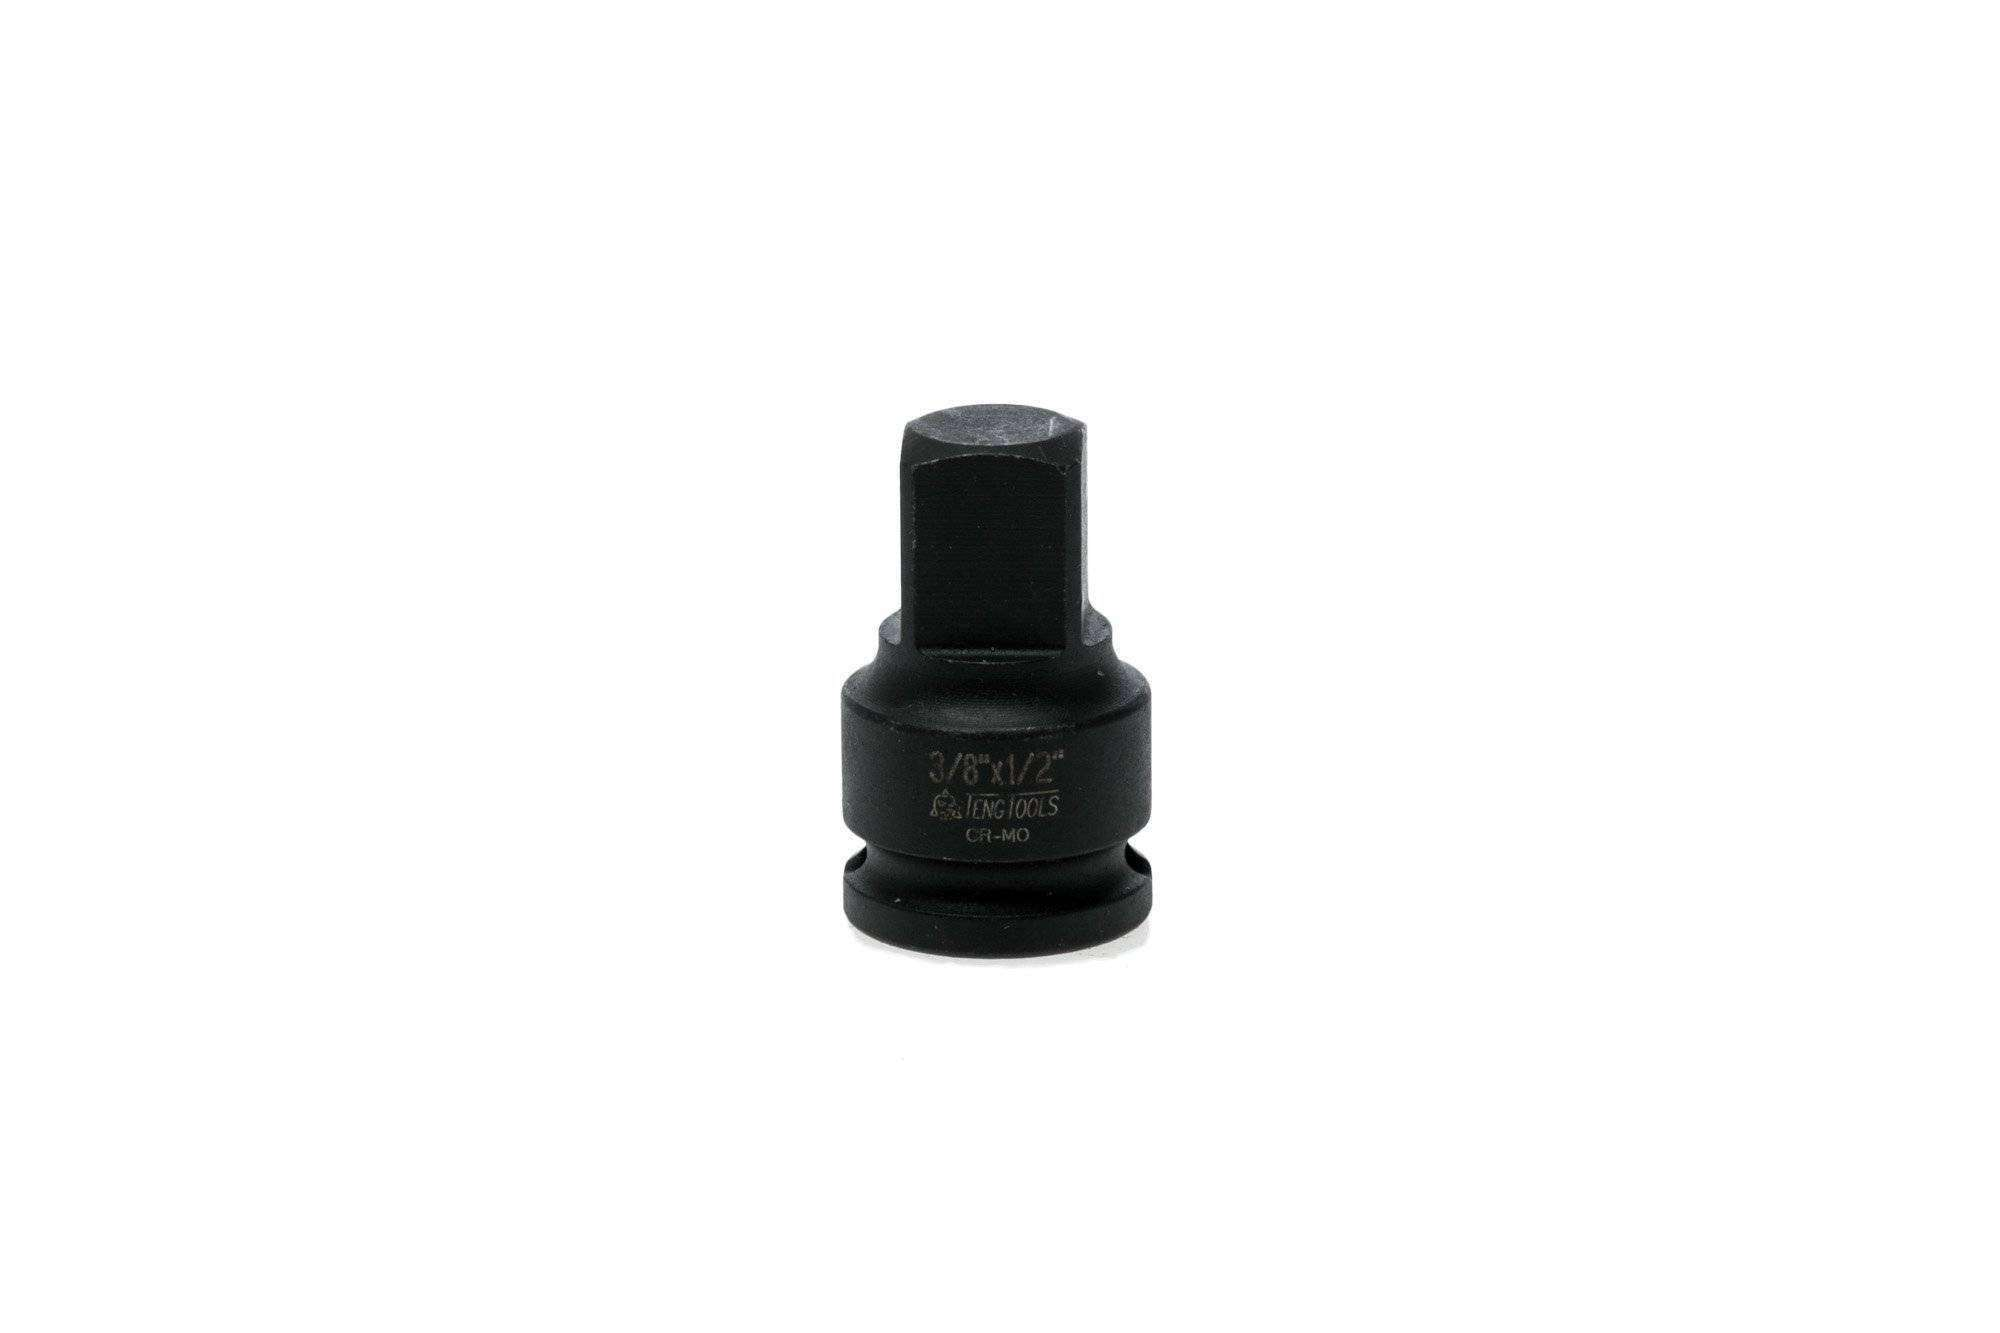 Teng Tools - 3/8 Inch Drive Female to 1/2 Inch Drive Male Adaptor - 980036A-C - Teng Tools USA